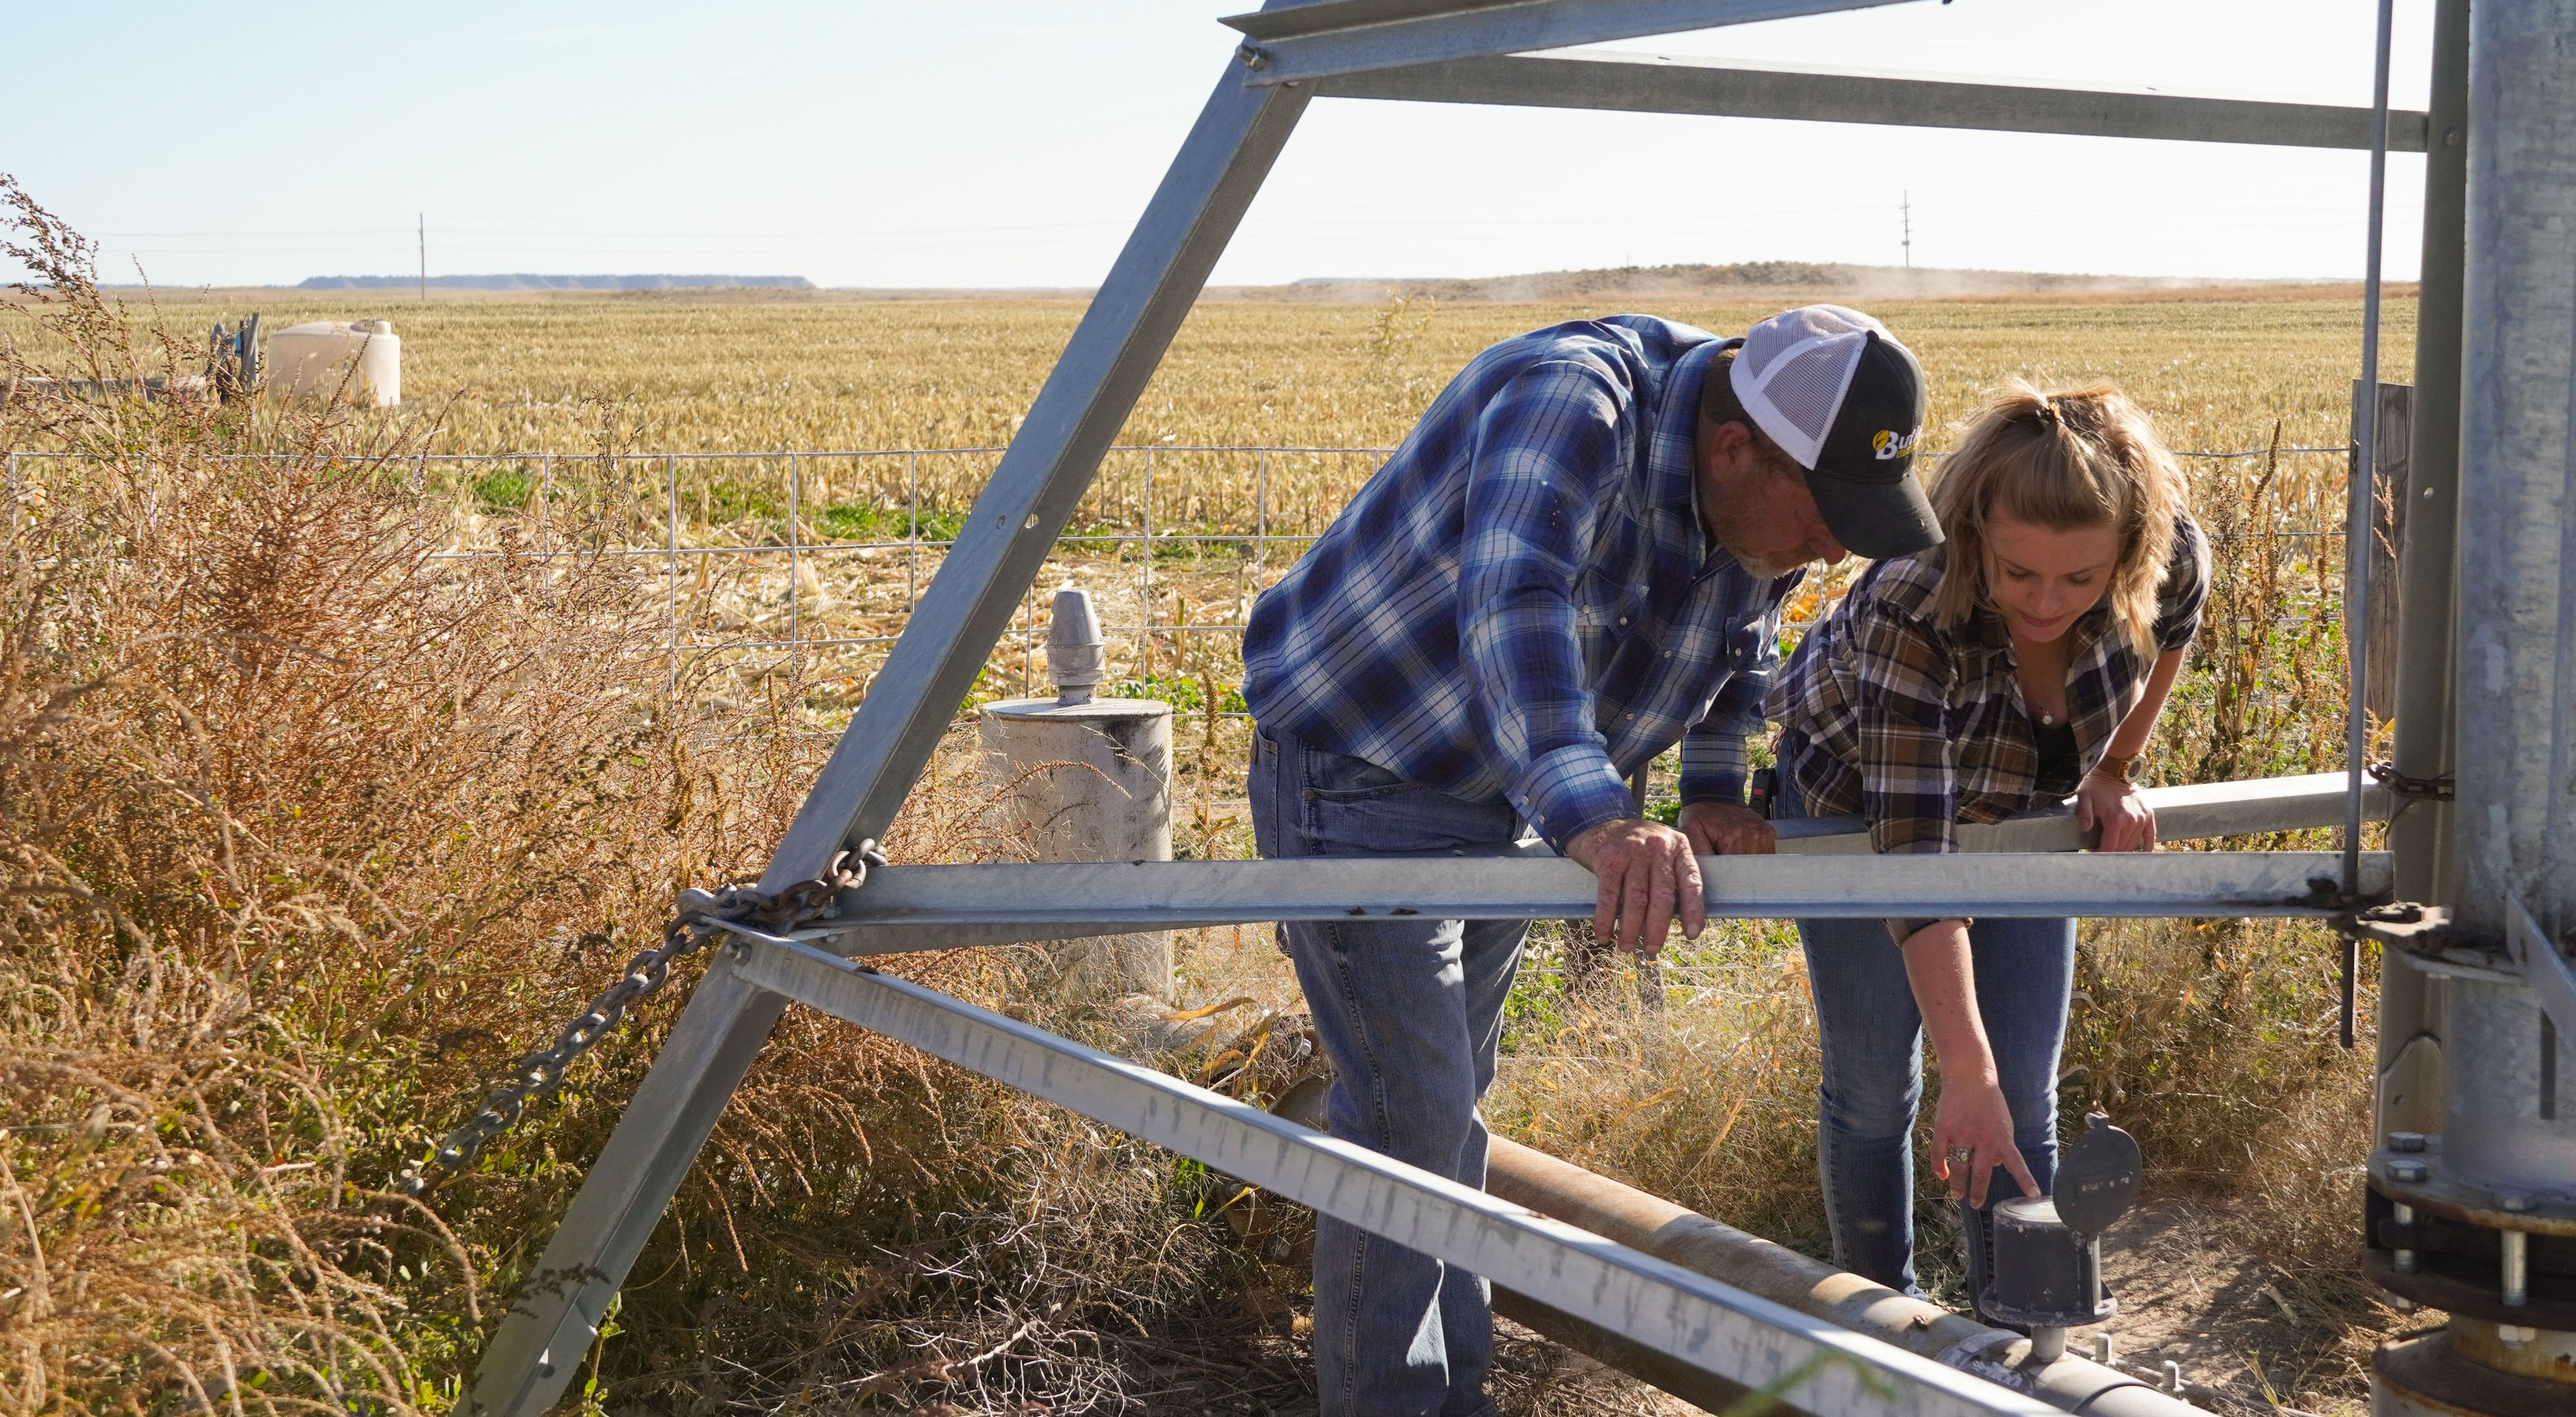 Techstars Startup Mammoth Water Works With Farmer to Check Meter